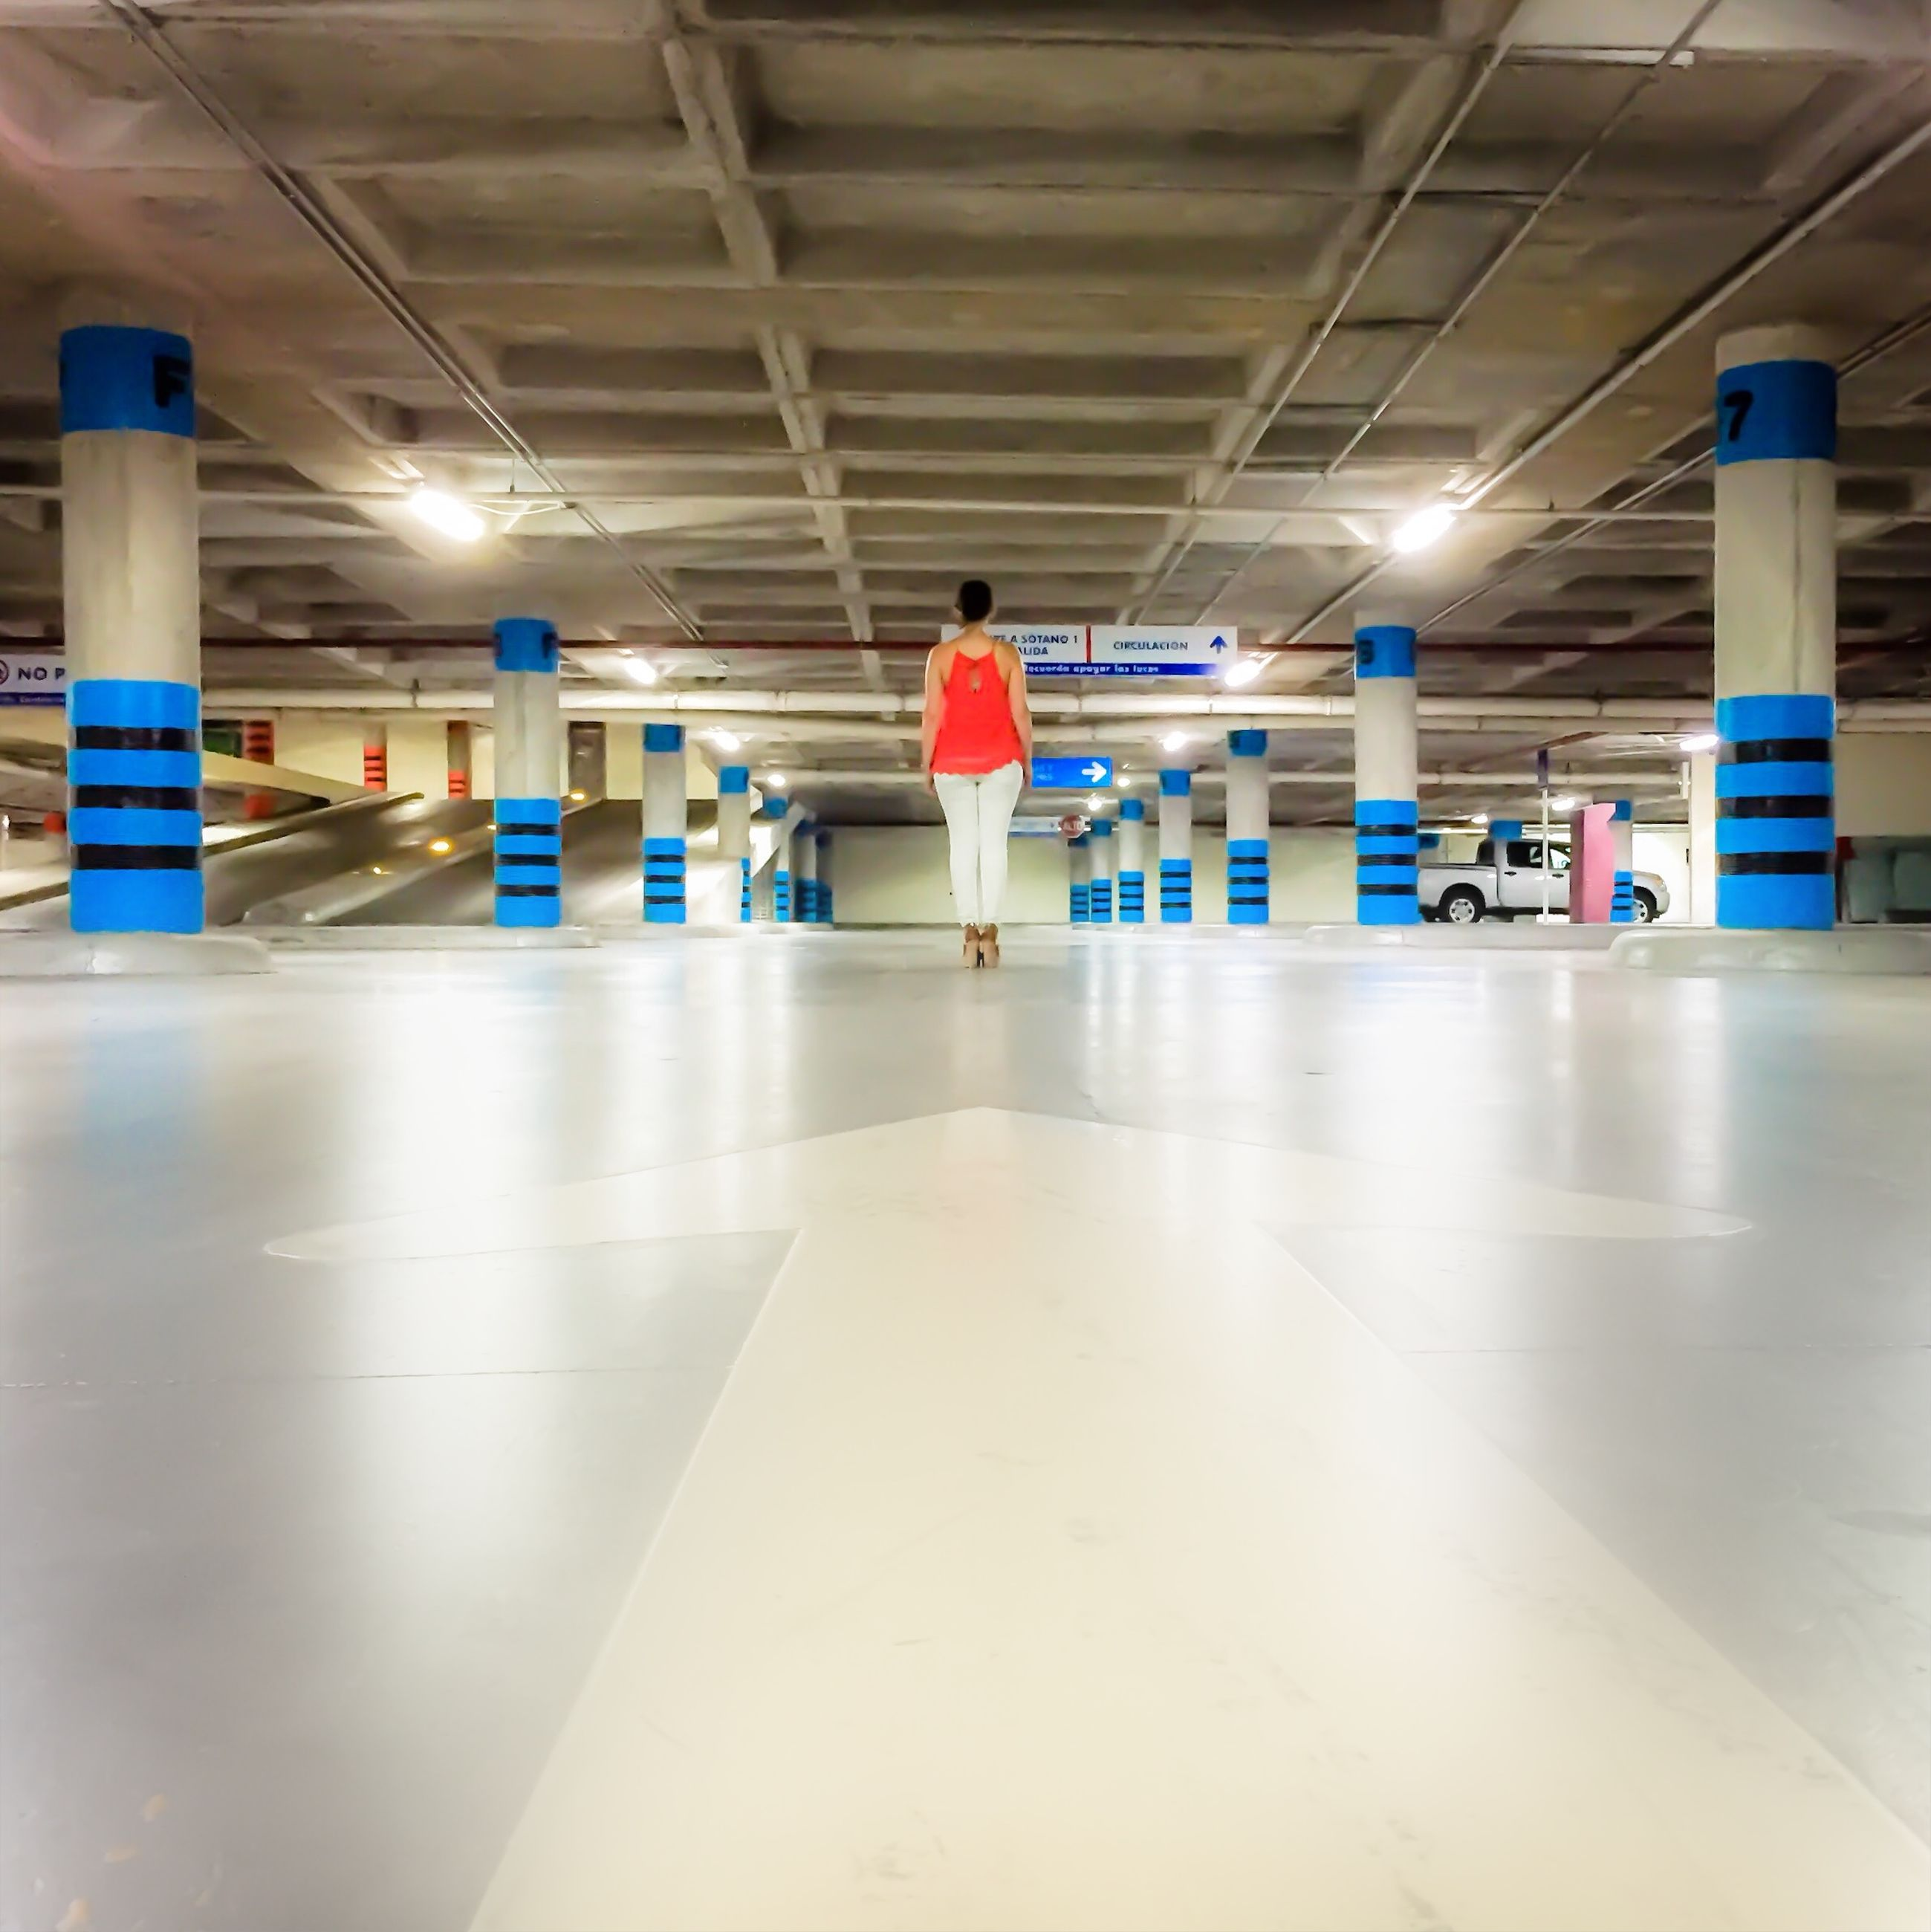 indoors, ceiling, illuminated, flooring, subway station, built structure, tiled floor, subway, empty, lighting equipment, interior, corridor, incidental people, in a row, architecture, airport, modern, blue, architectural column